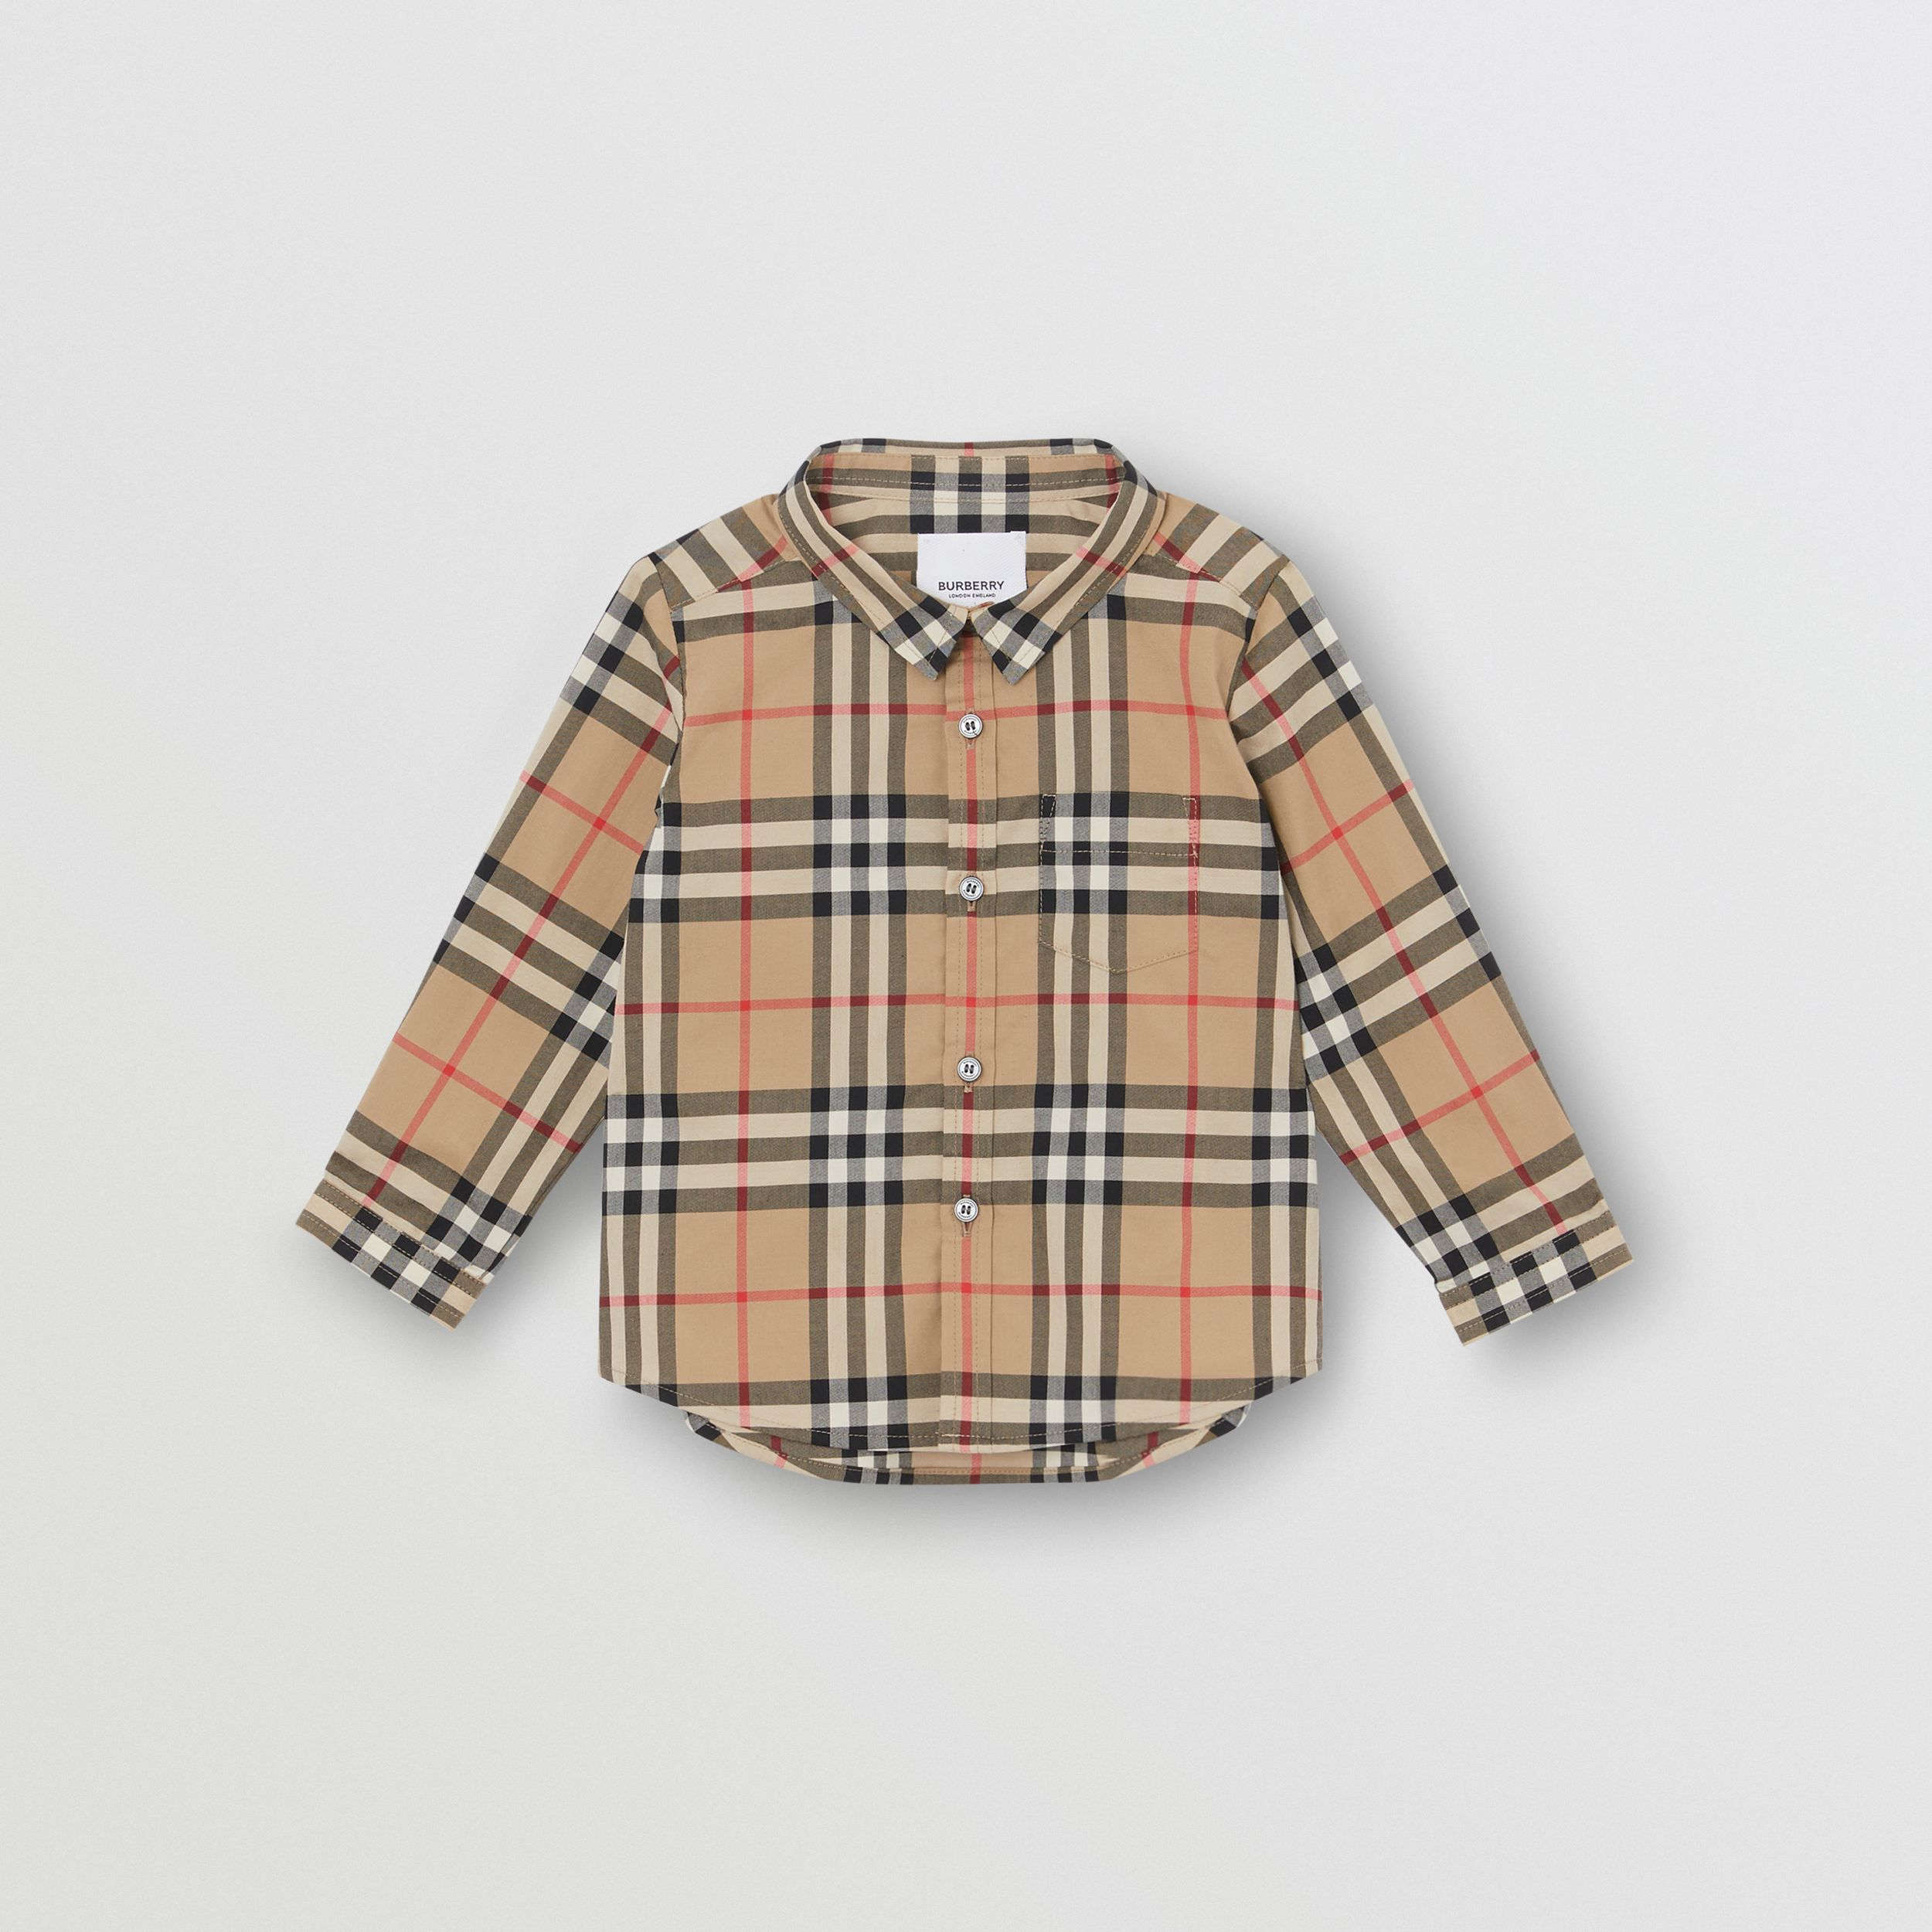 Vintage Check Cotton Shirt in Archive Beige - Children | Burberry - 1